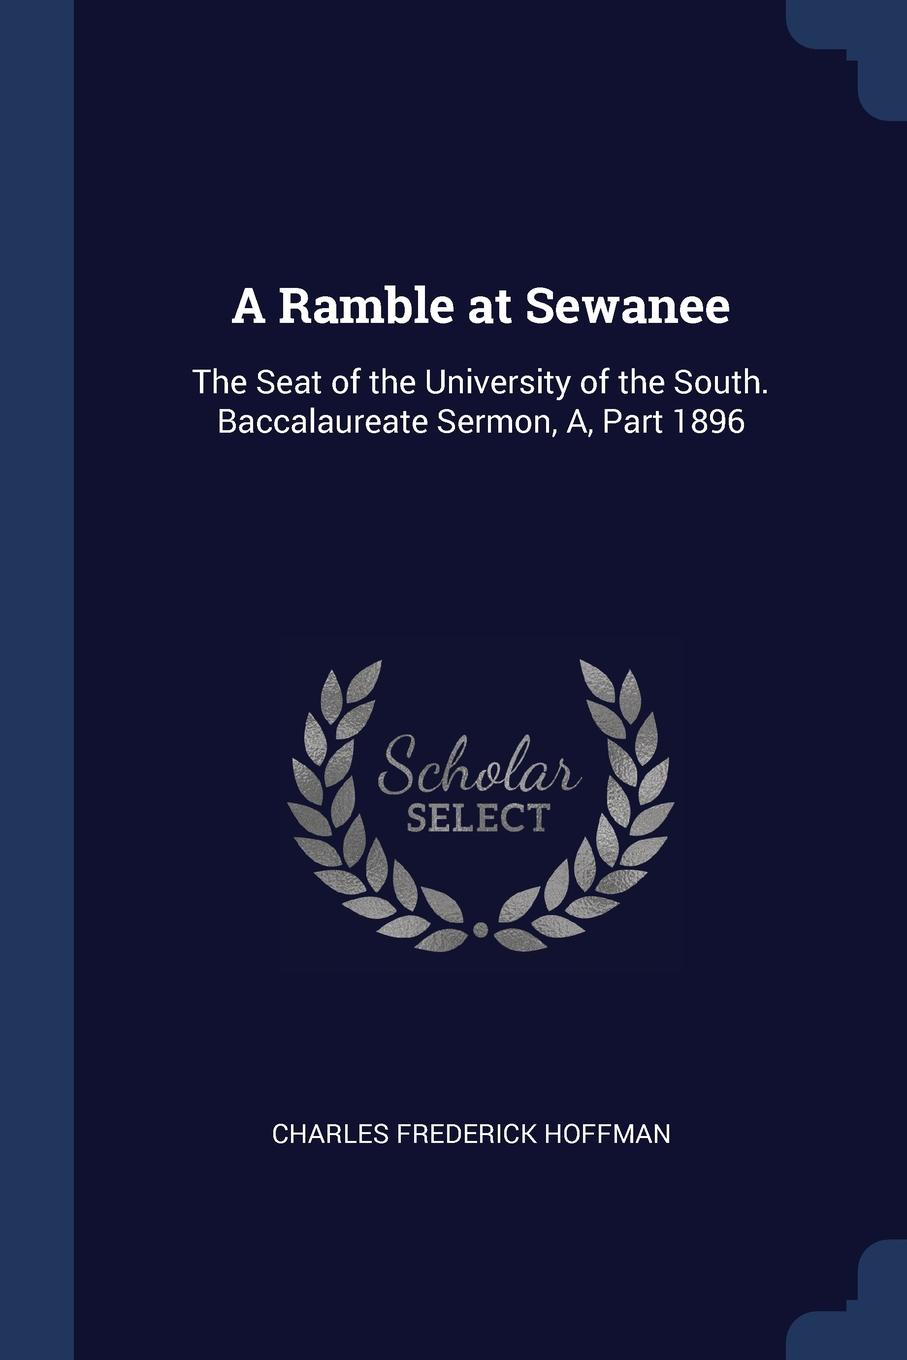 A Ramble at Sewanee. The Seat of the University of the South. Baccalaureate Sermon, A, Part 1896